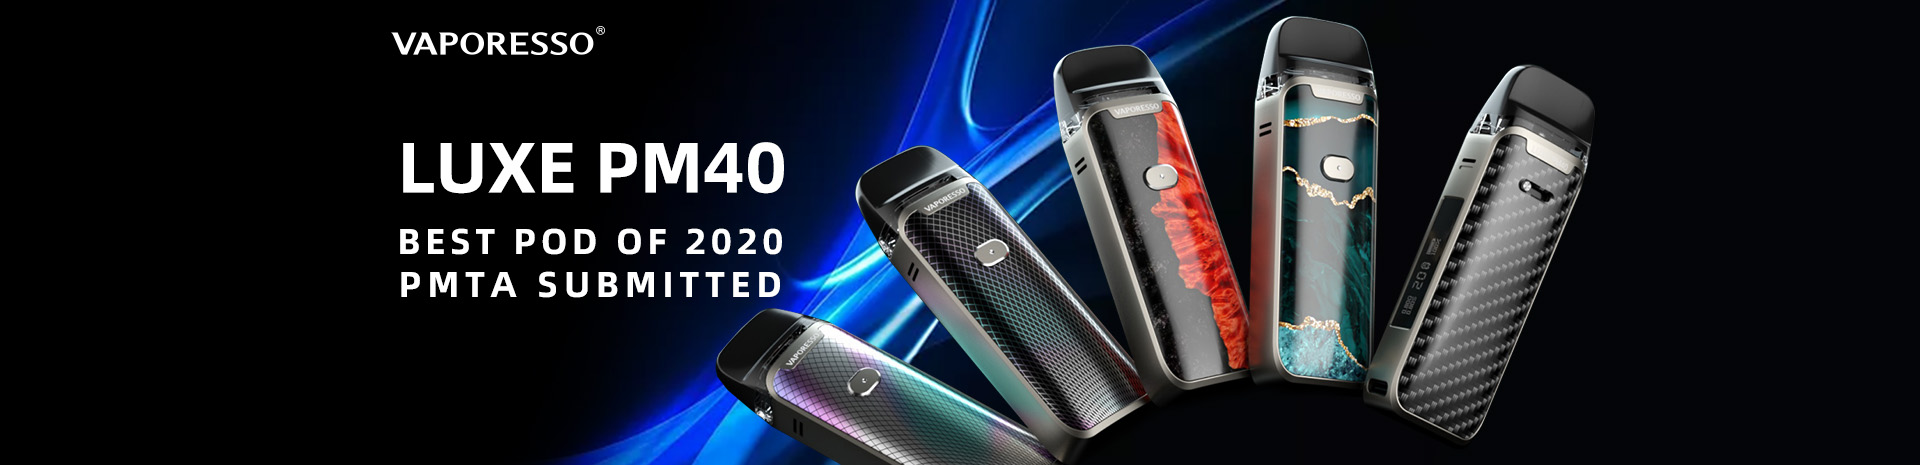 Vaporesso Luxe PM40 Kit Banner